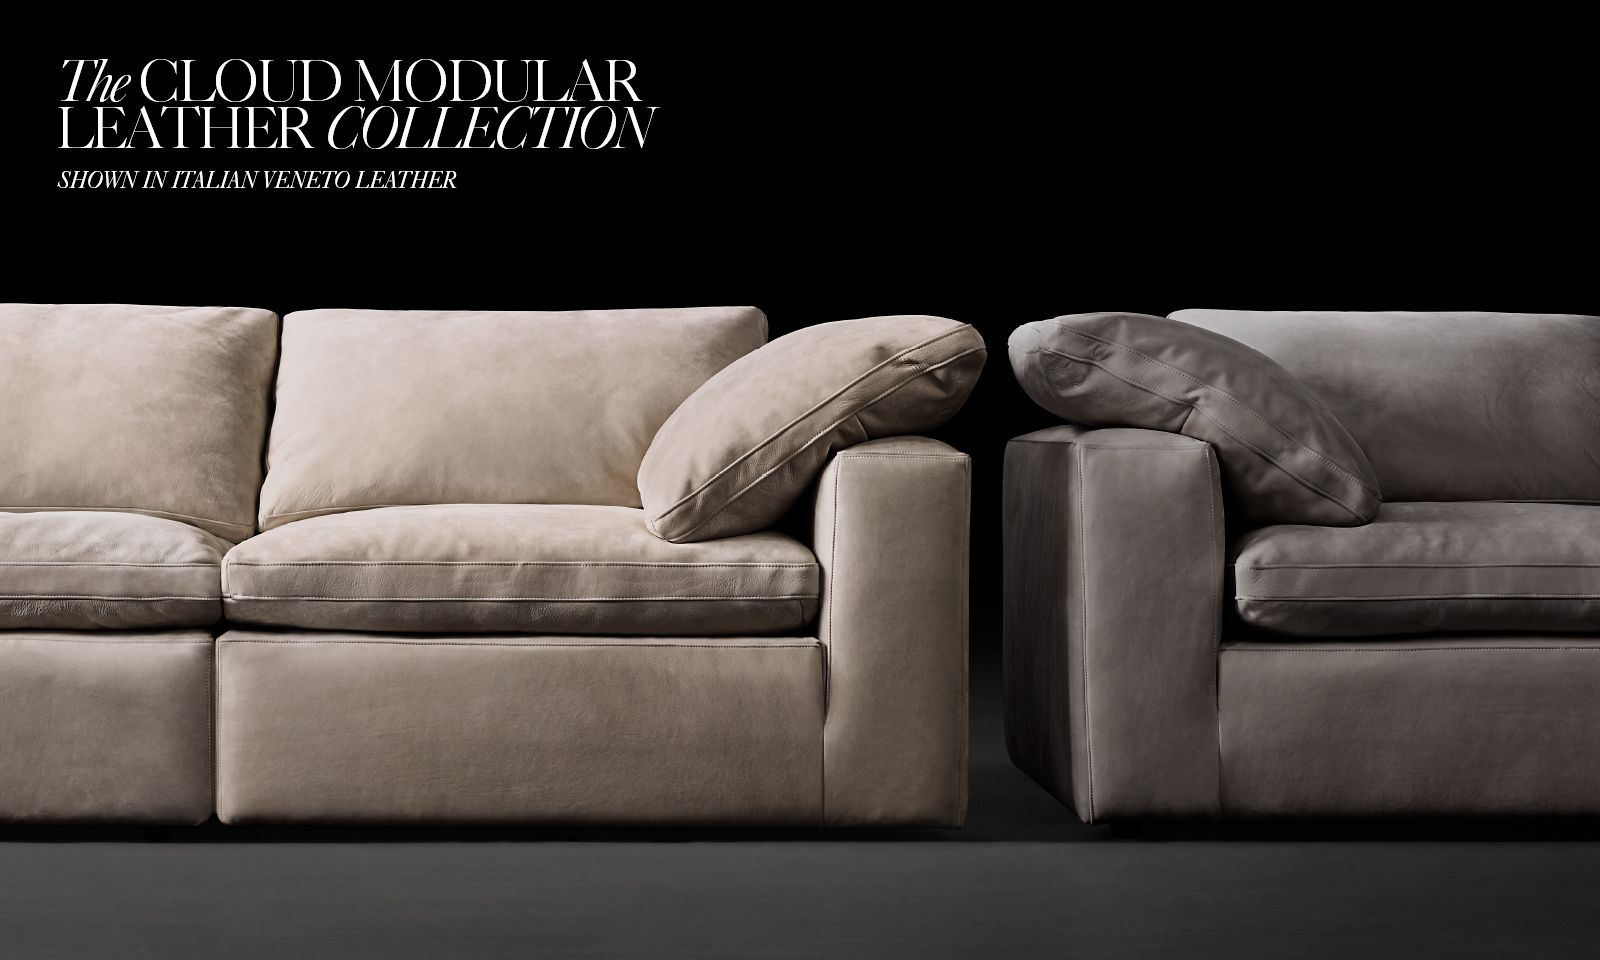 The Cloud Modular Leather Collection